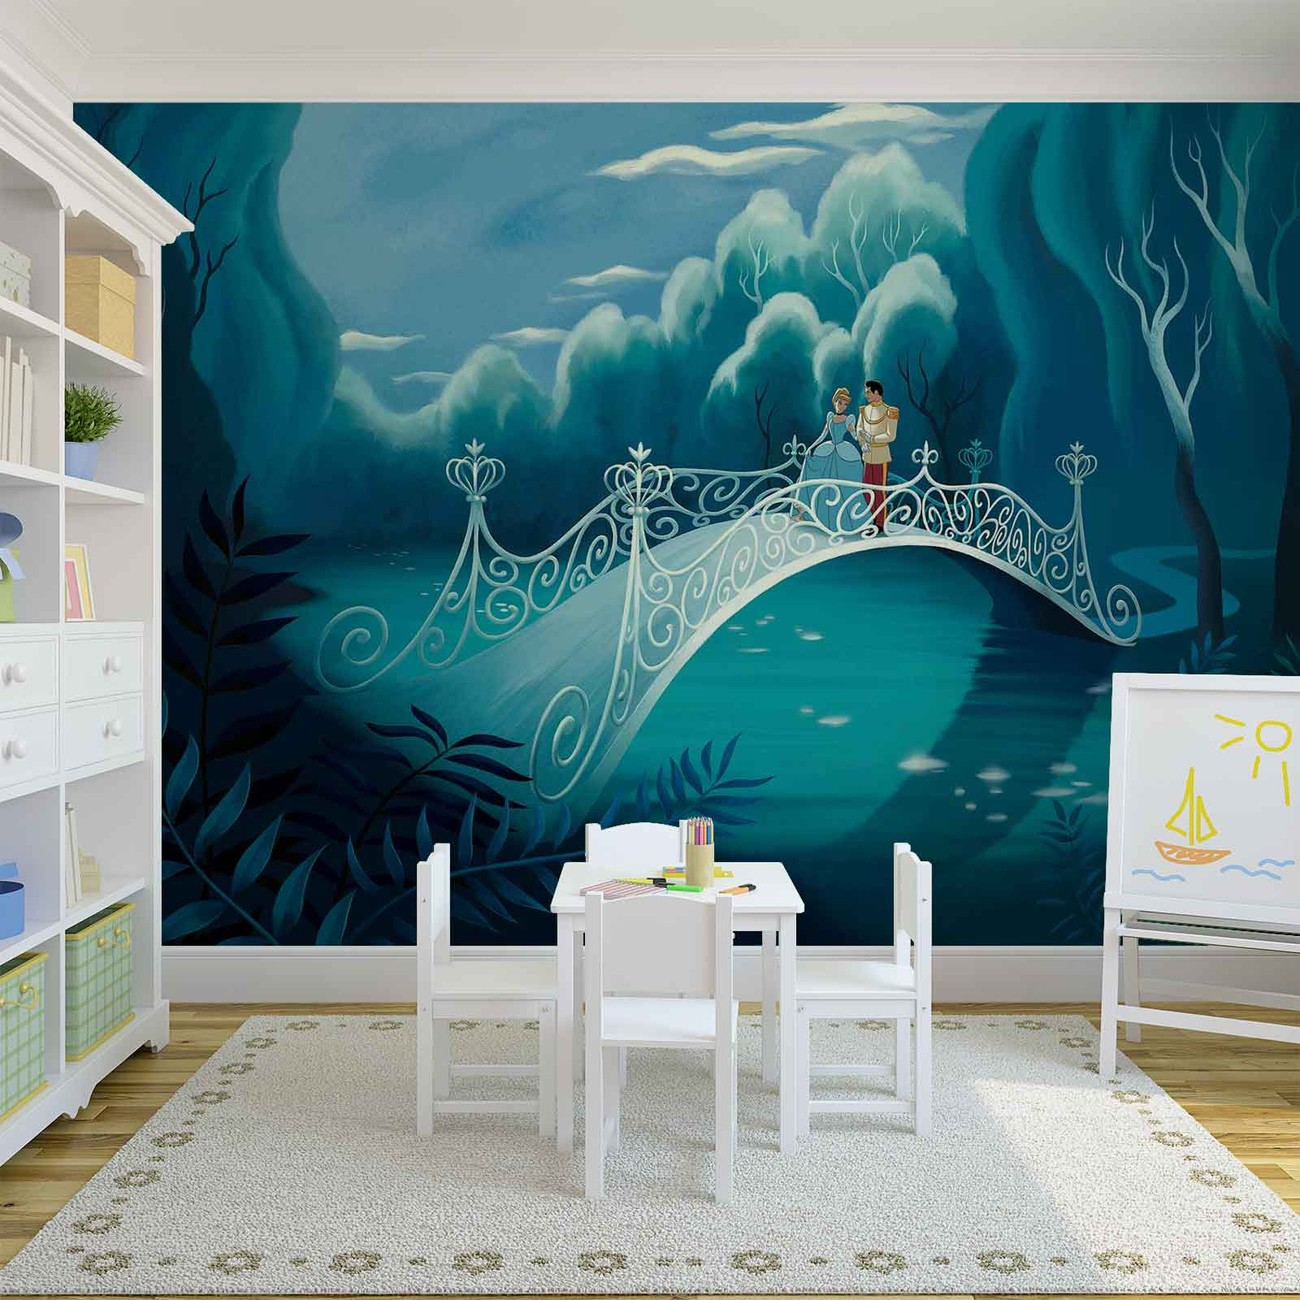 Princesses cinderella wall paper mural buy at europosters for Cinderella wall mural